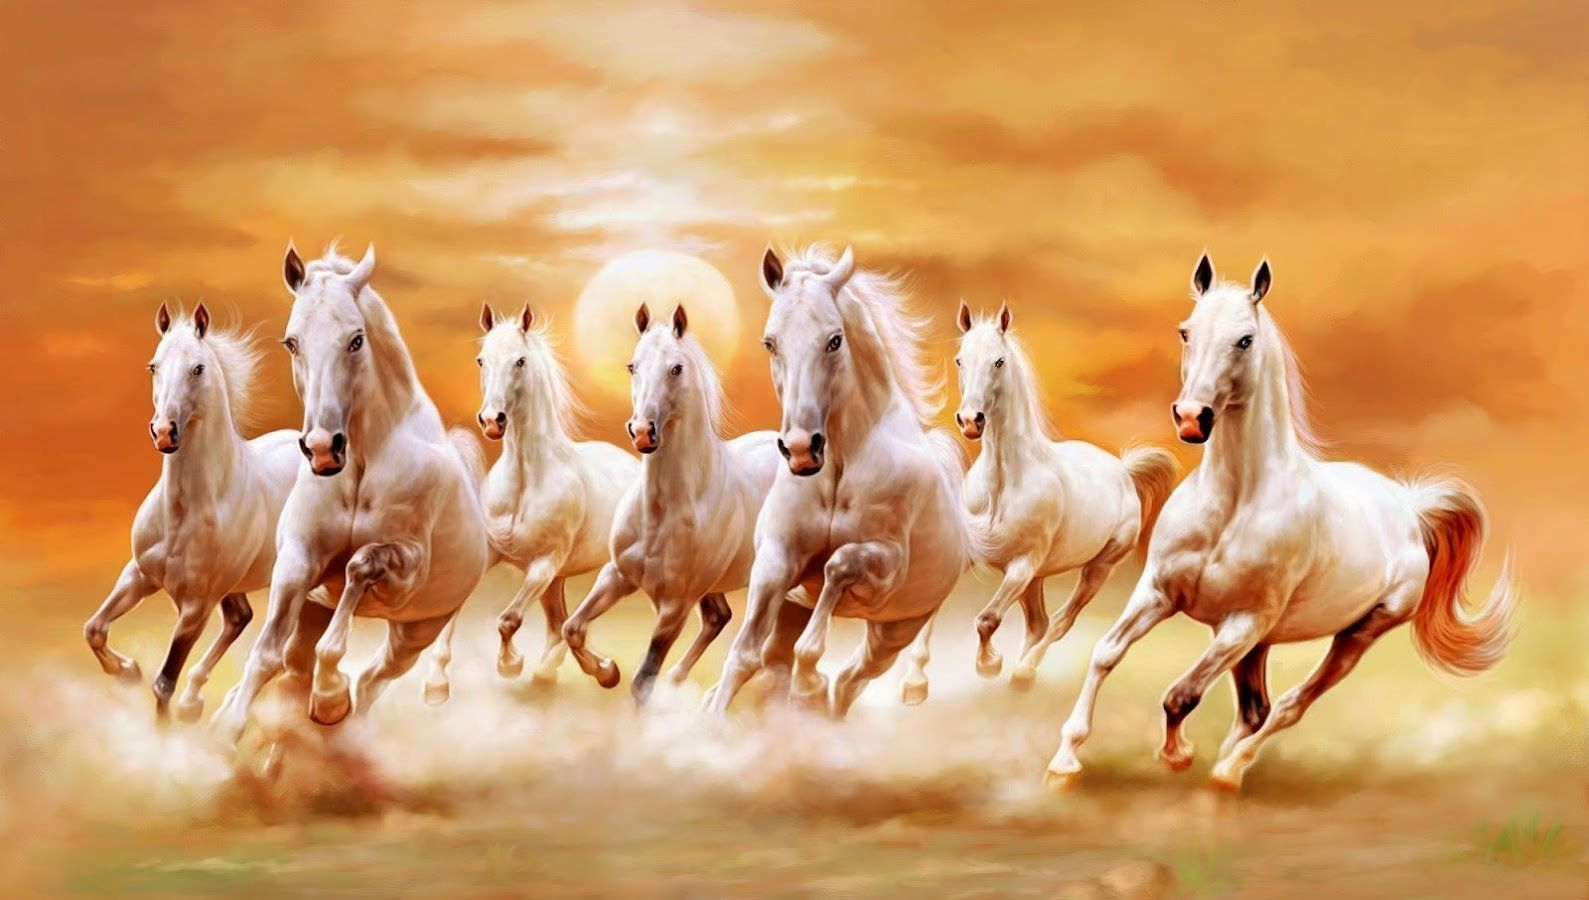 Horses Walpaper Hd In 2020 Horse Wallpaper Horse Canvas Painting Seven Horses Painting